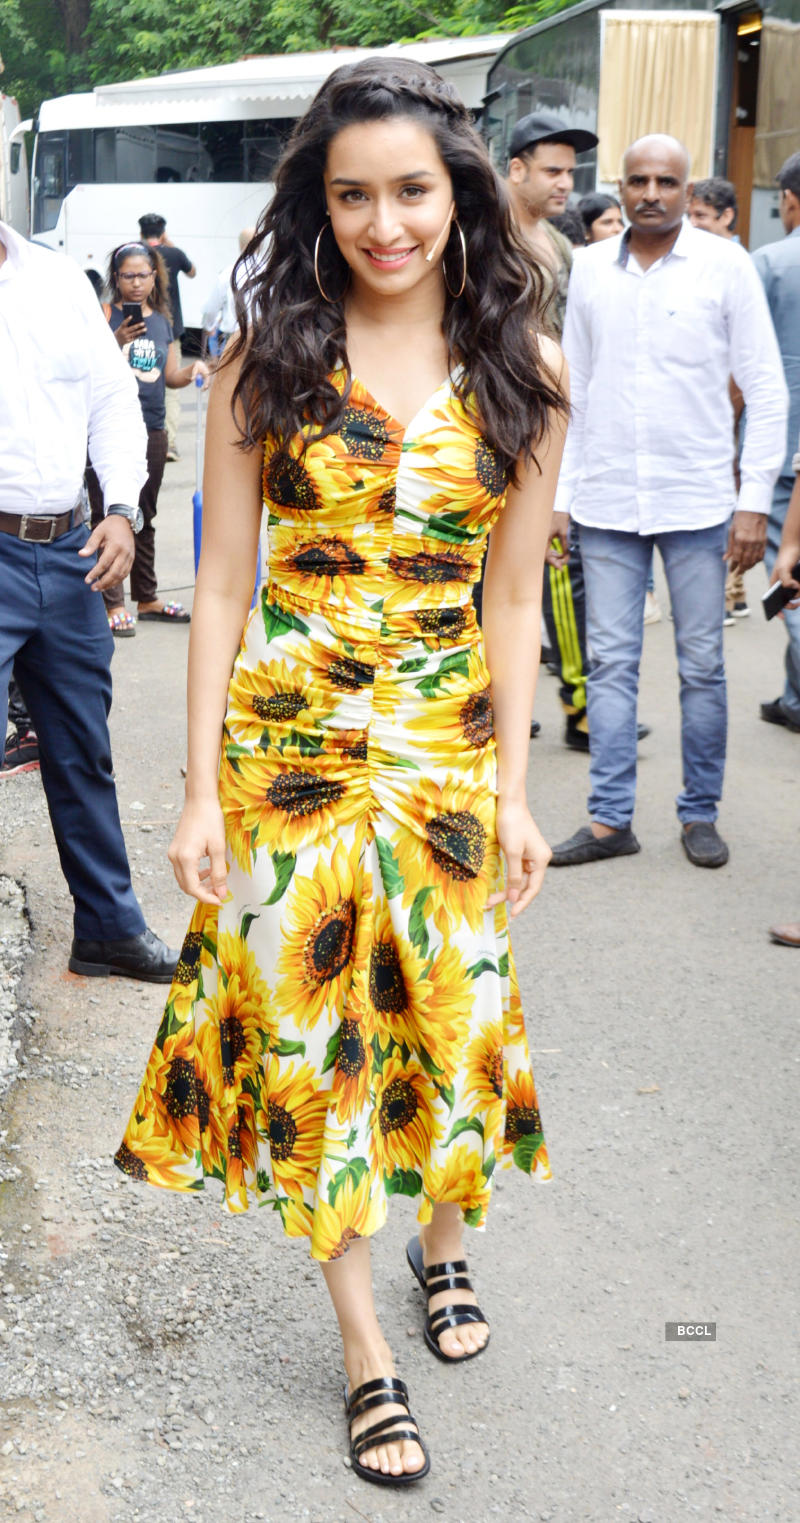 Saaho: Promotions